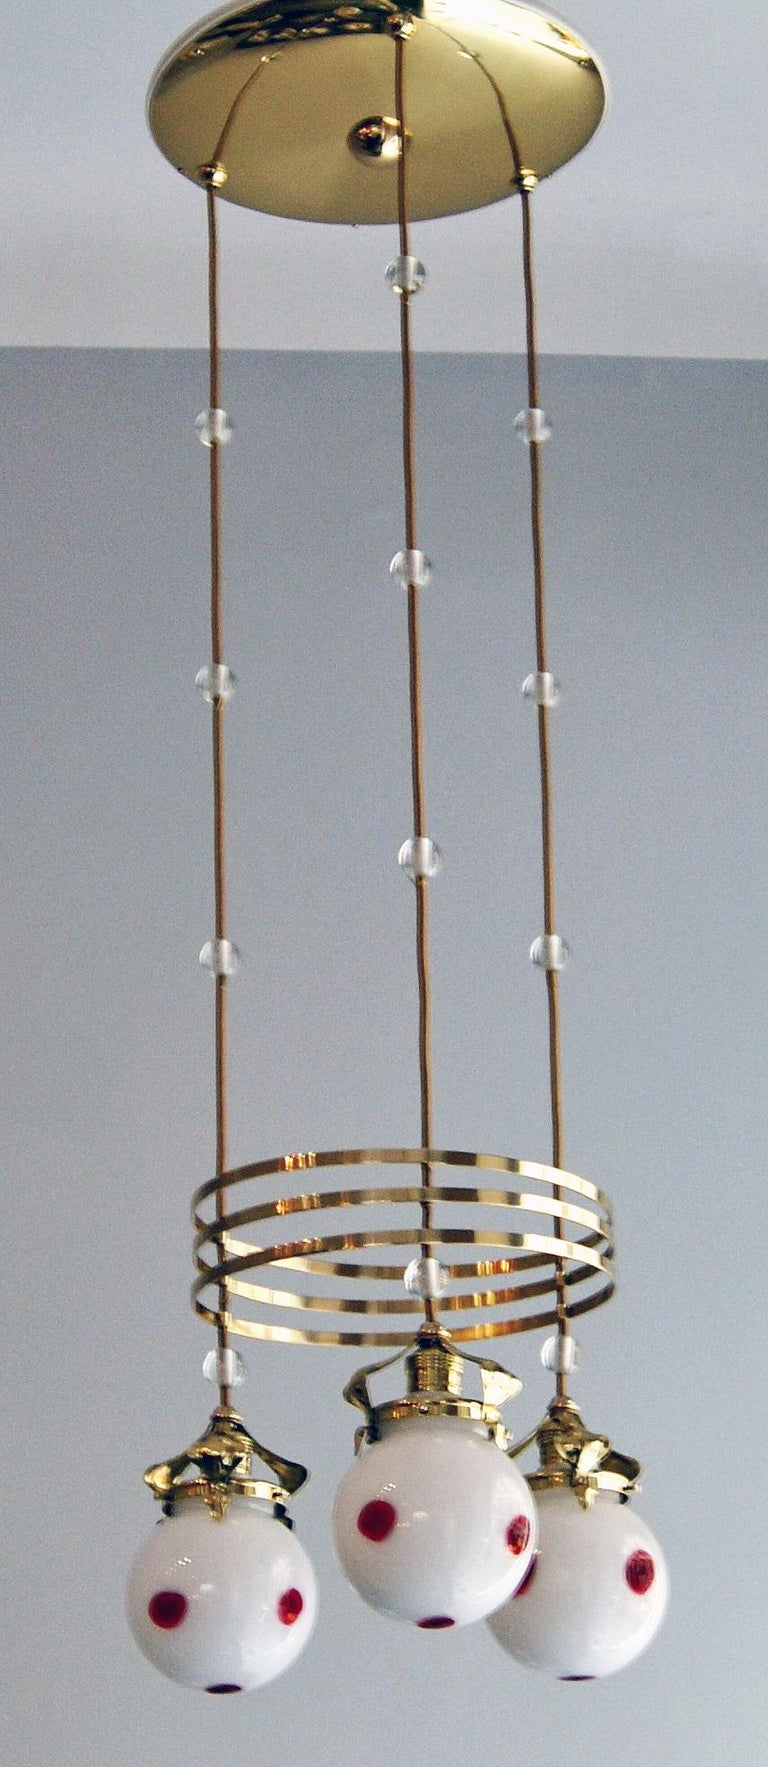 Most elegant Art Nouveau ceiling lamp or chandelier with three bulbs made by Bakalowits & Sons. Vienna (Austria), manufactured circa 1905-1910.  Specifications: Three bulbs made of glass - each of them having decorative red spots melted on white